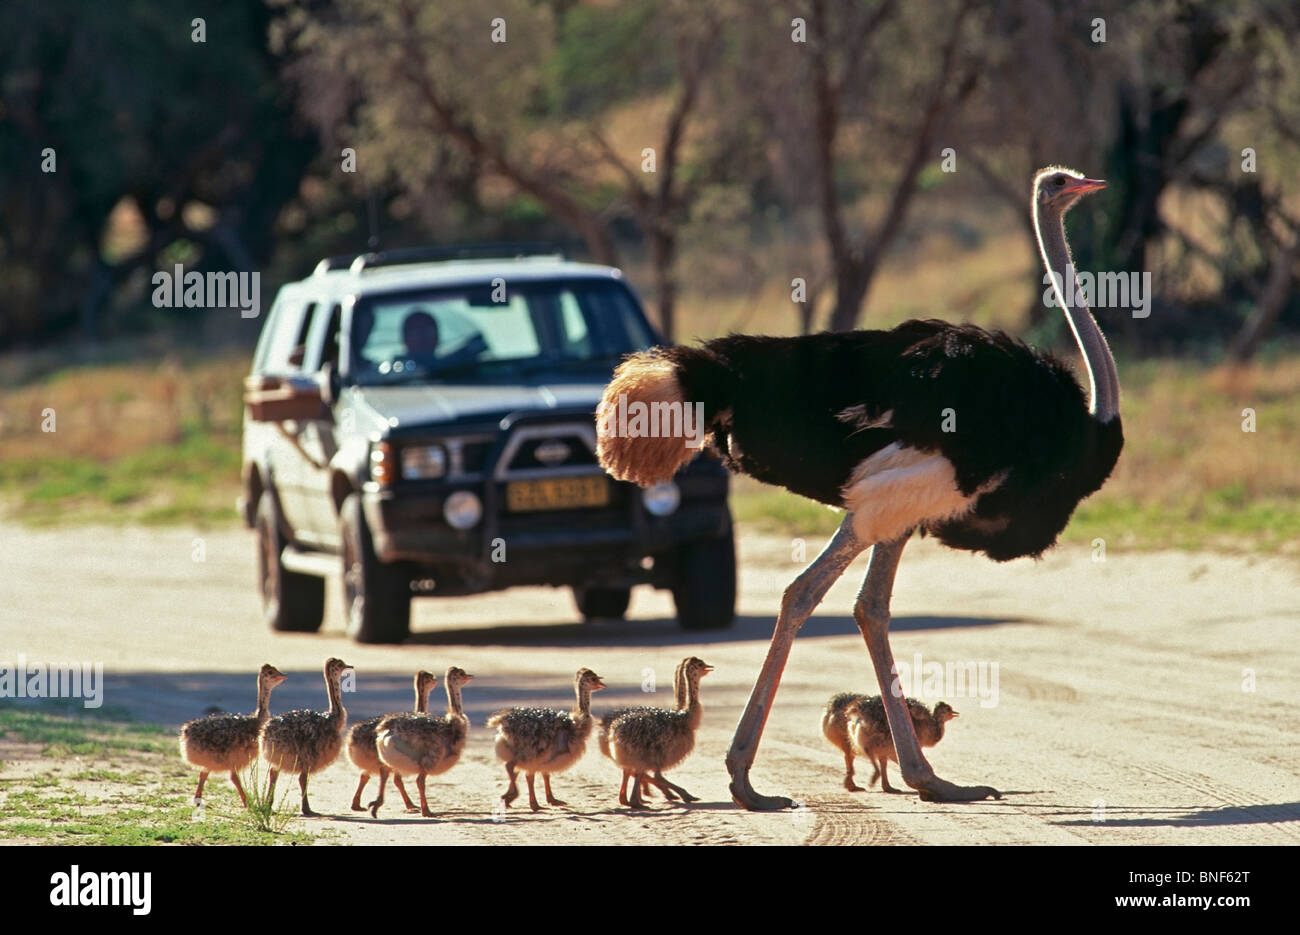 Close-Up view of Common Ostrich (Struthio camelus) et les poussins traversant une route, Kgalagadi Transfrontier Photo Stock